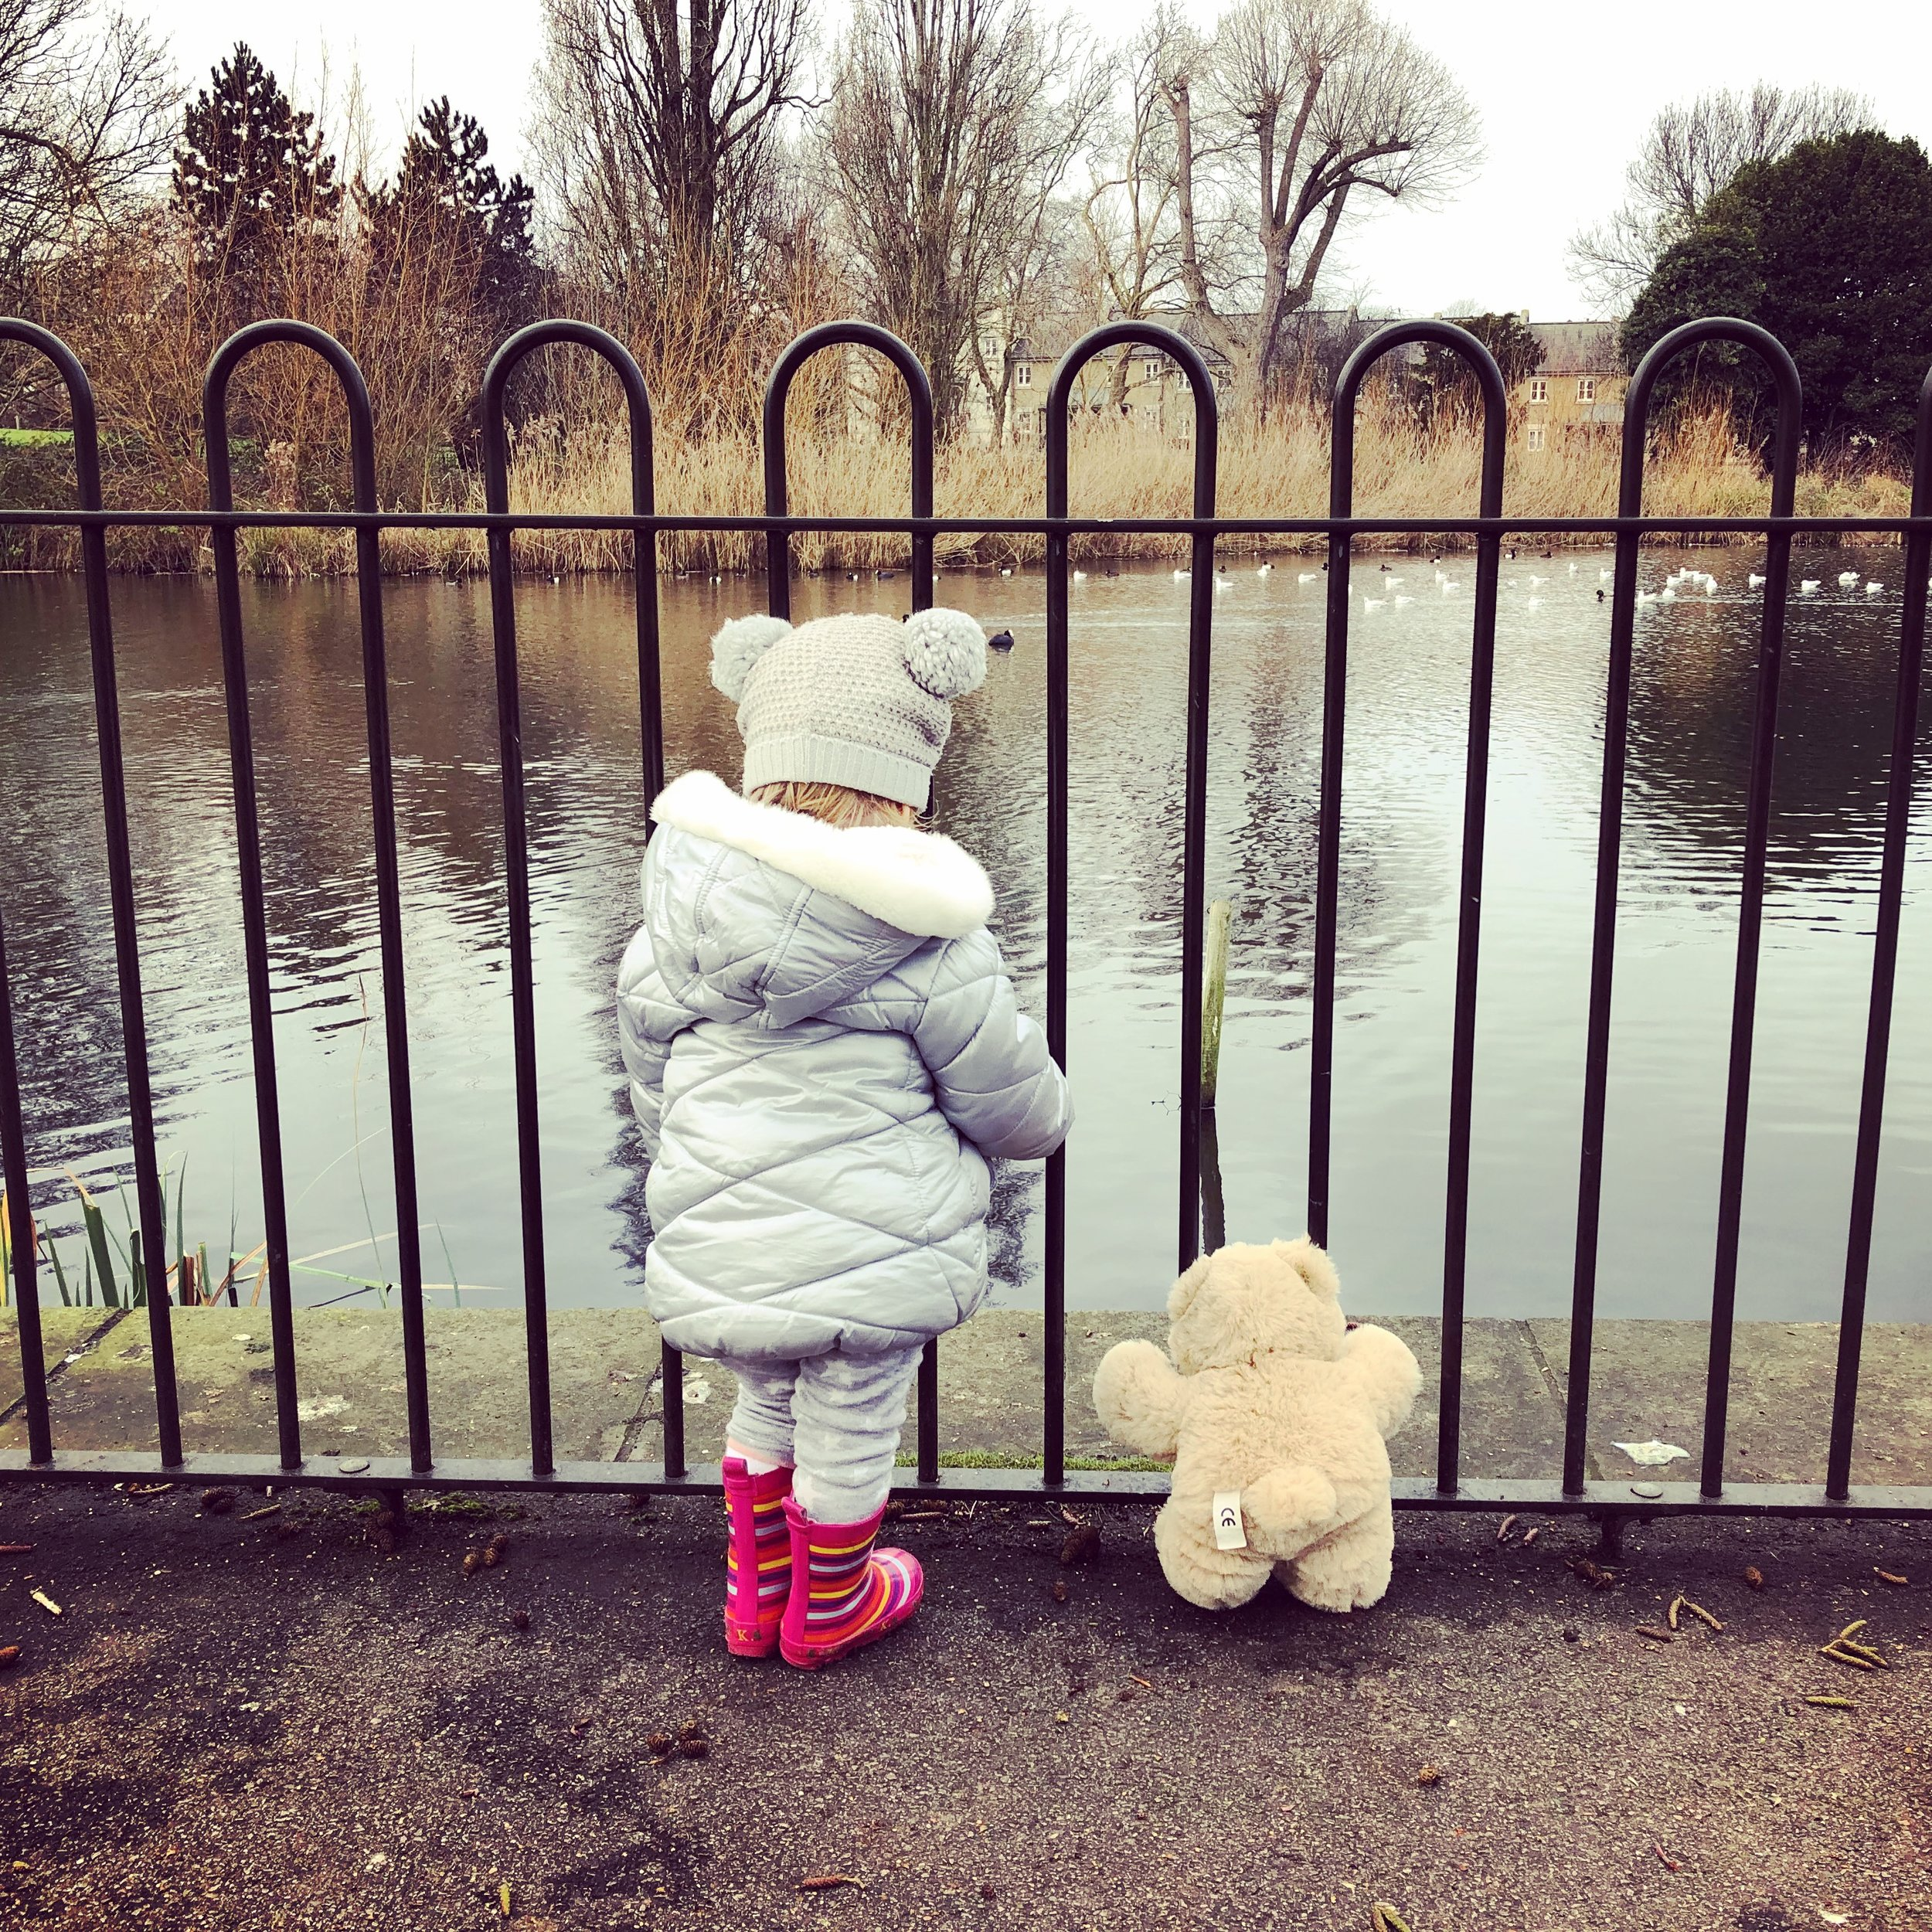 Contemplating feeding Rupert to the ducks